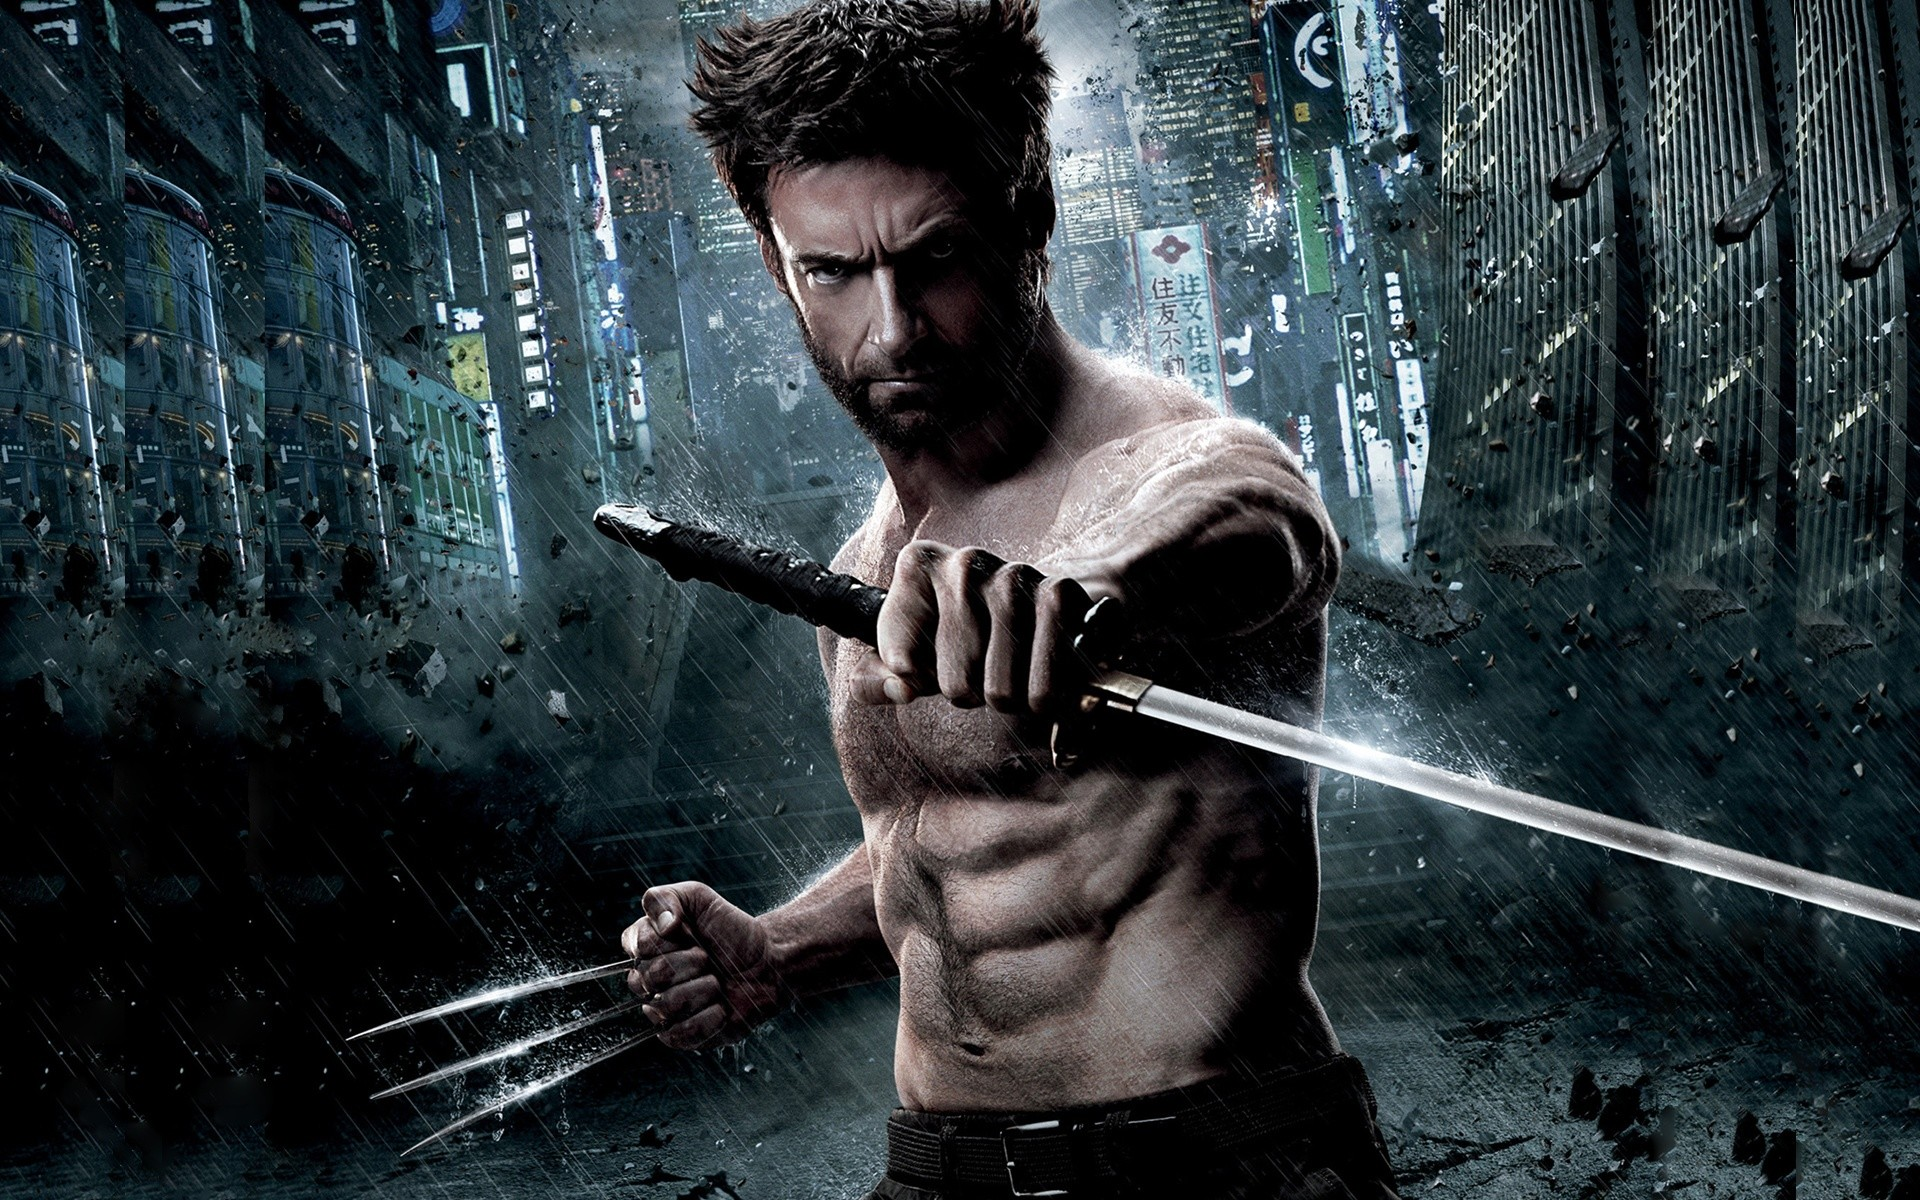 1920x1200 Wolverine[1920x1080] Need #iPhone #6S #Plus #Wallpaper/ #Background